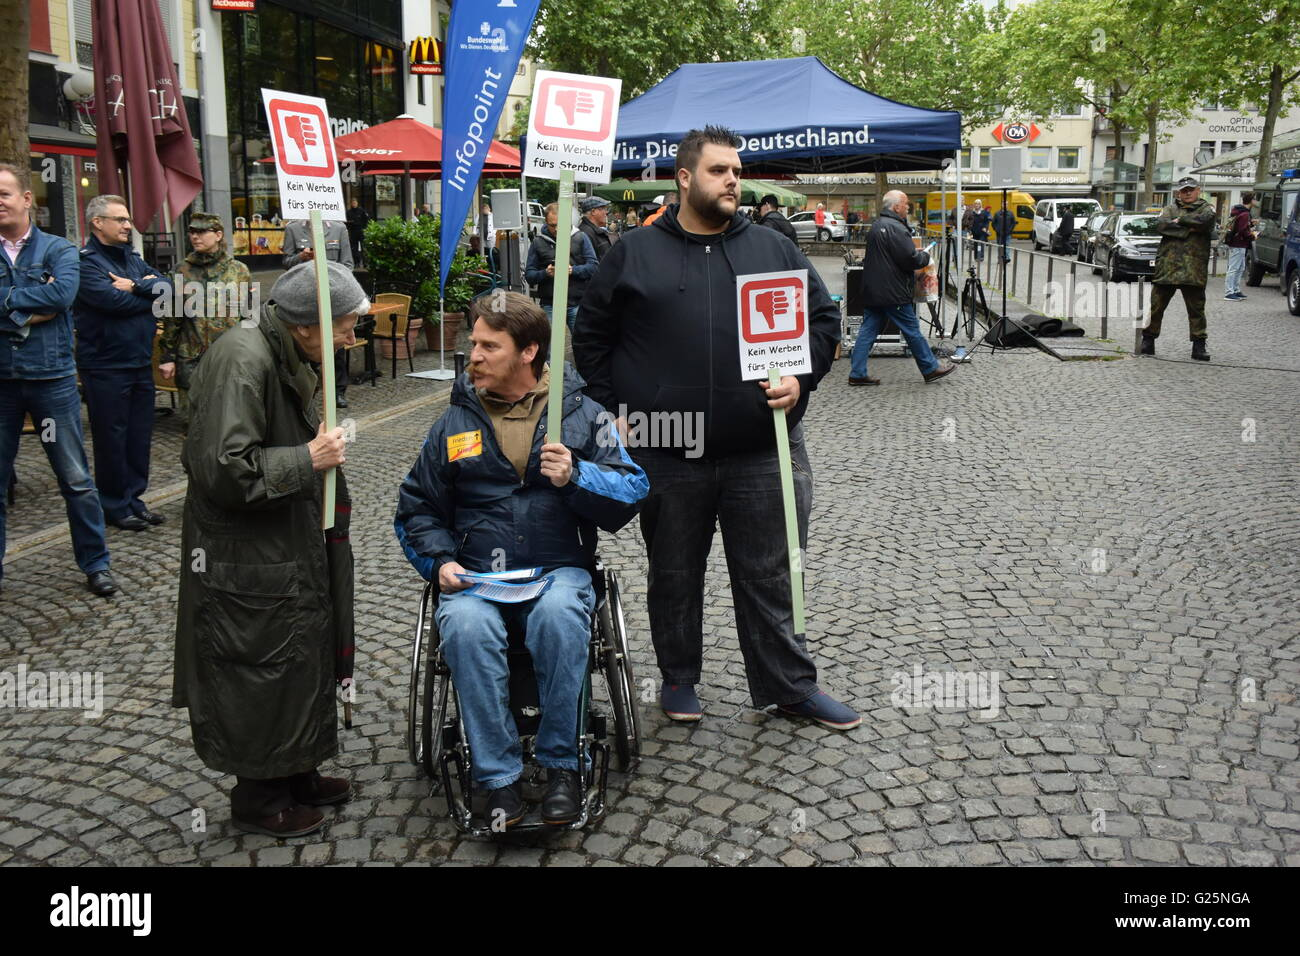 some people demonstrate against the advertising of the German Bundeswehr on the Friedensplatz in Bonn, Germany - Stock Image